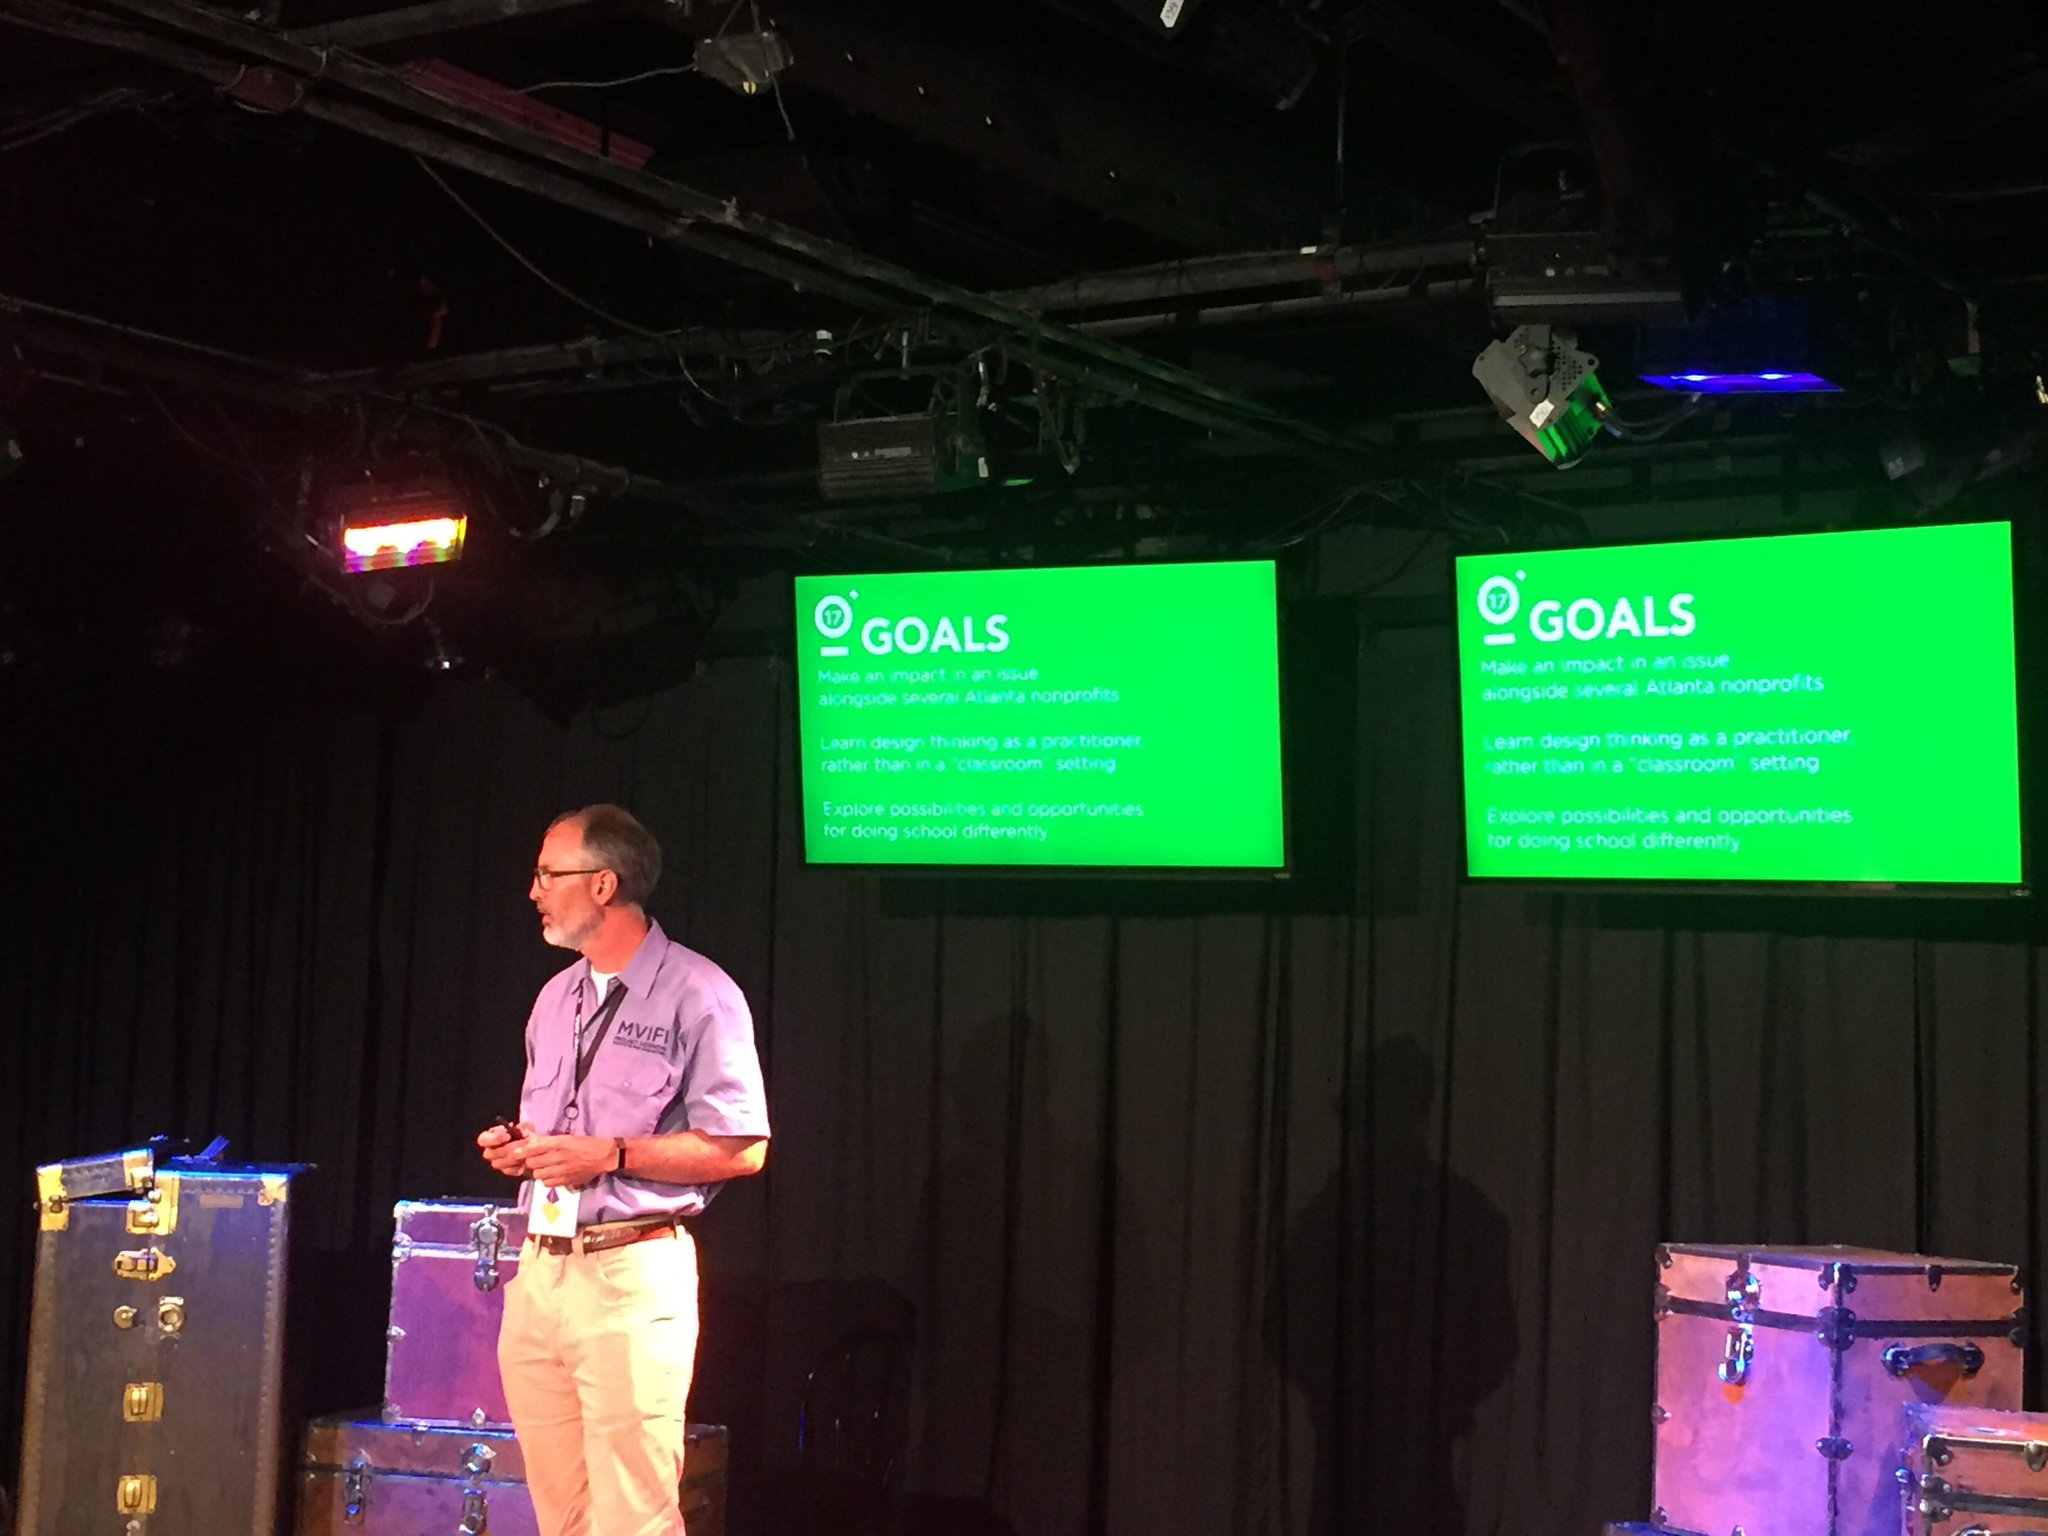 @boadams1 opens #fuse17 with goals for 3 days: make an impact, learn dt by doing & explore doing school differently https://t.co/ahiGOoDvww